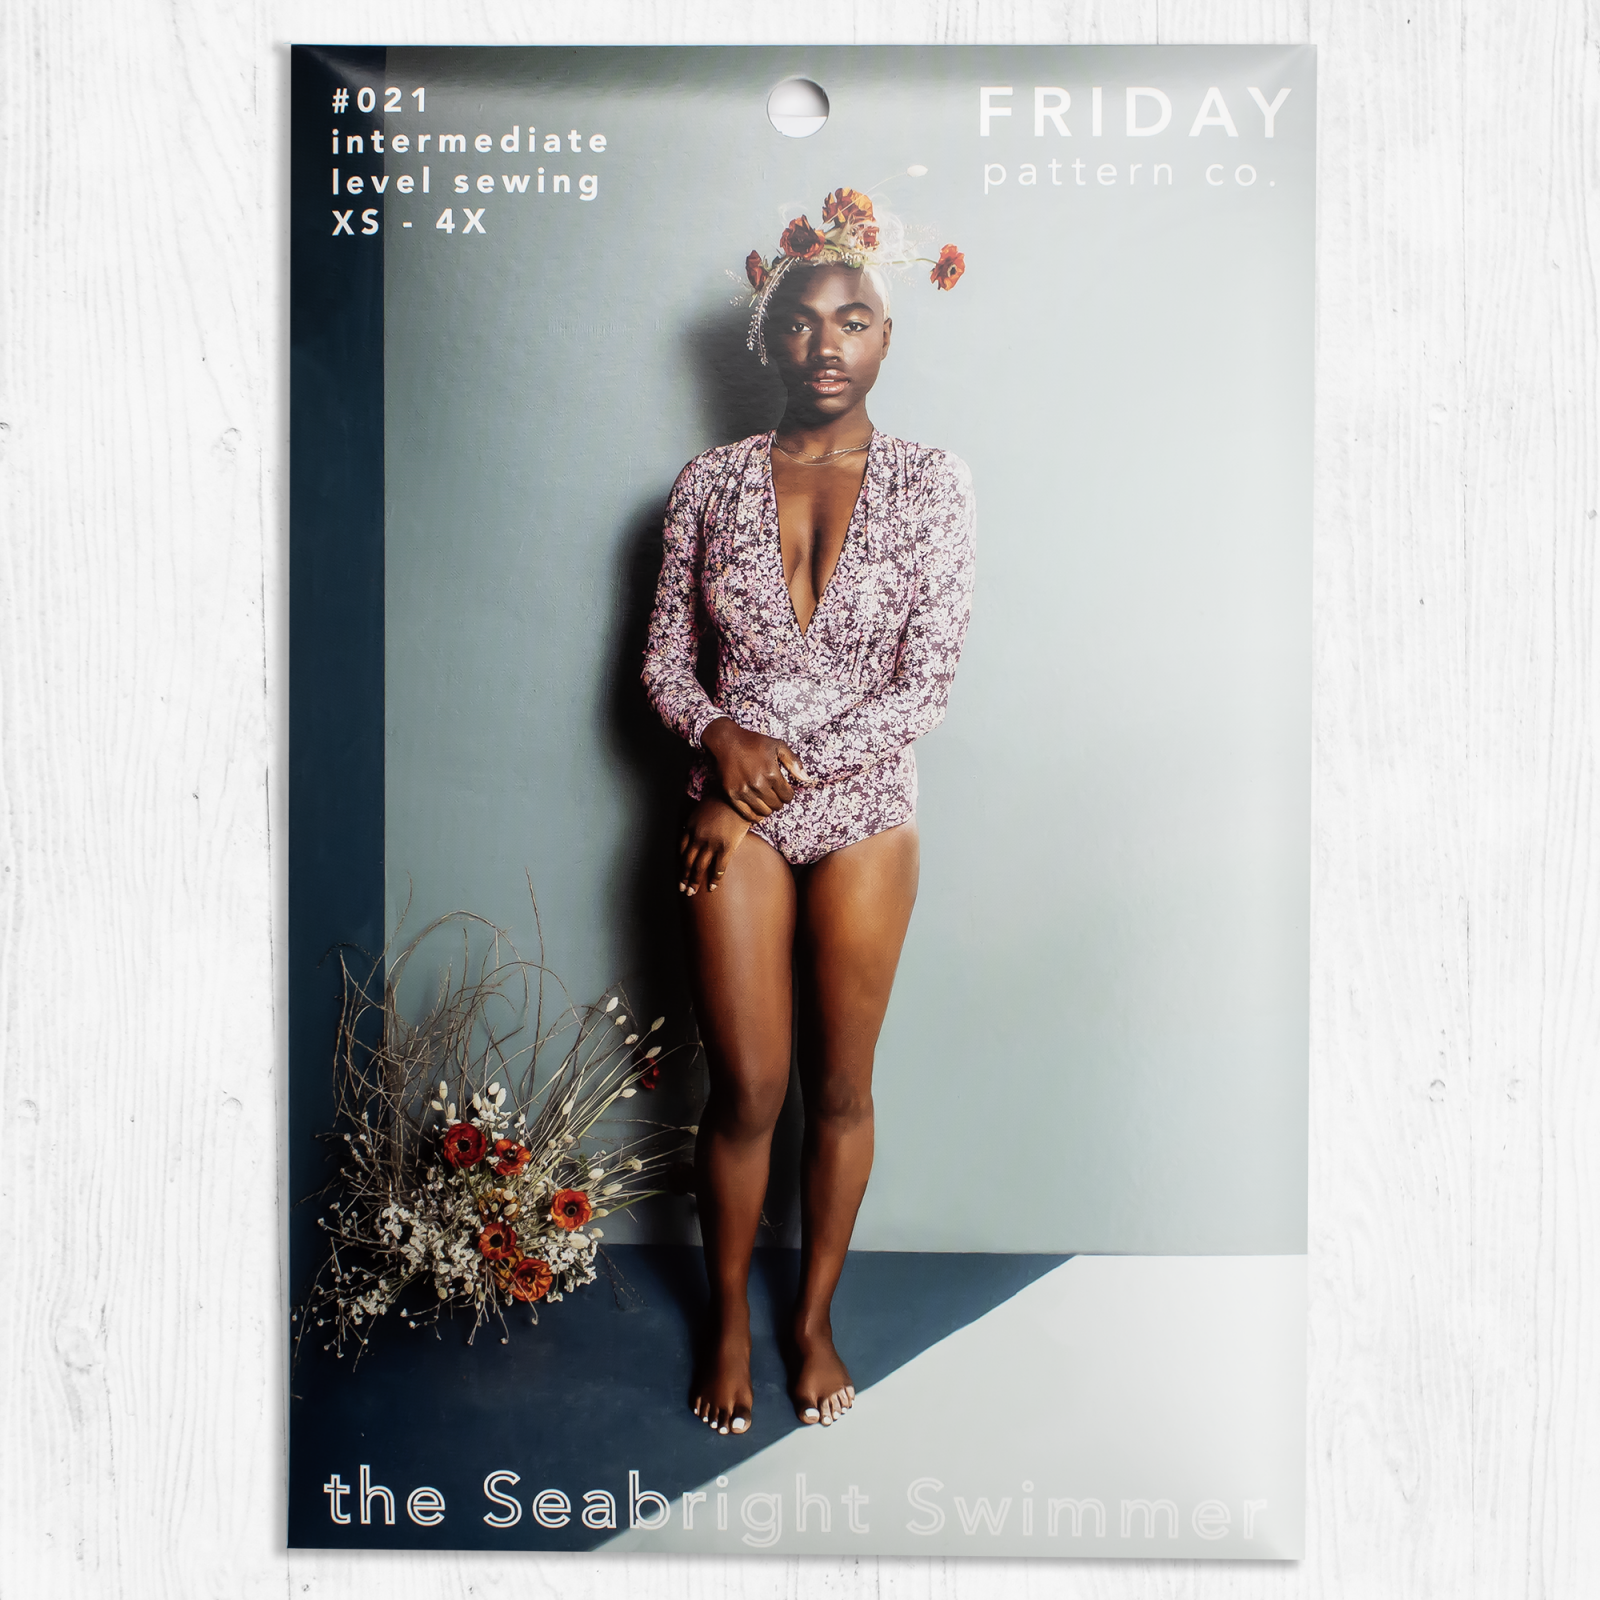 Friday Pattern Co. - The Seabright Swimmer